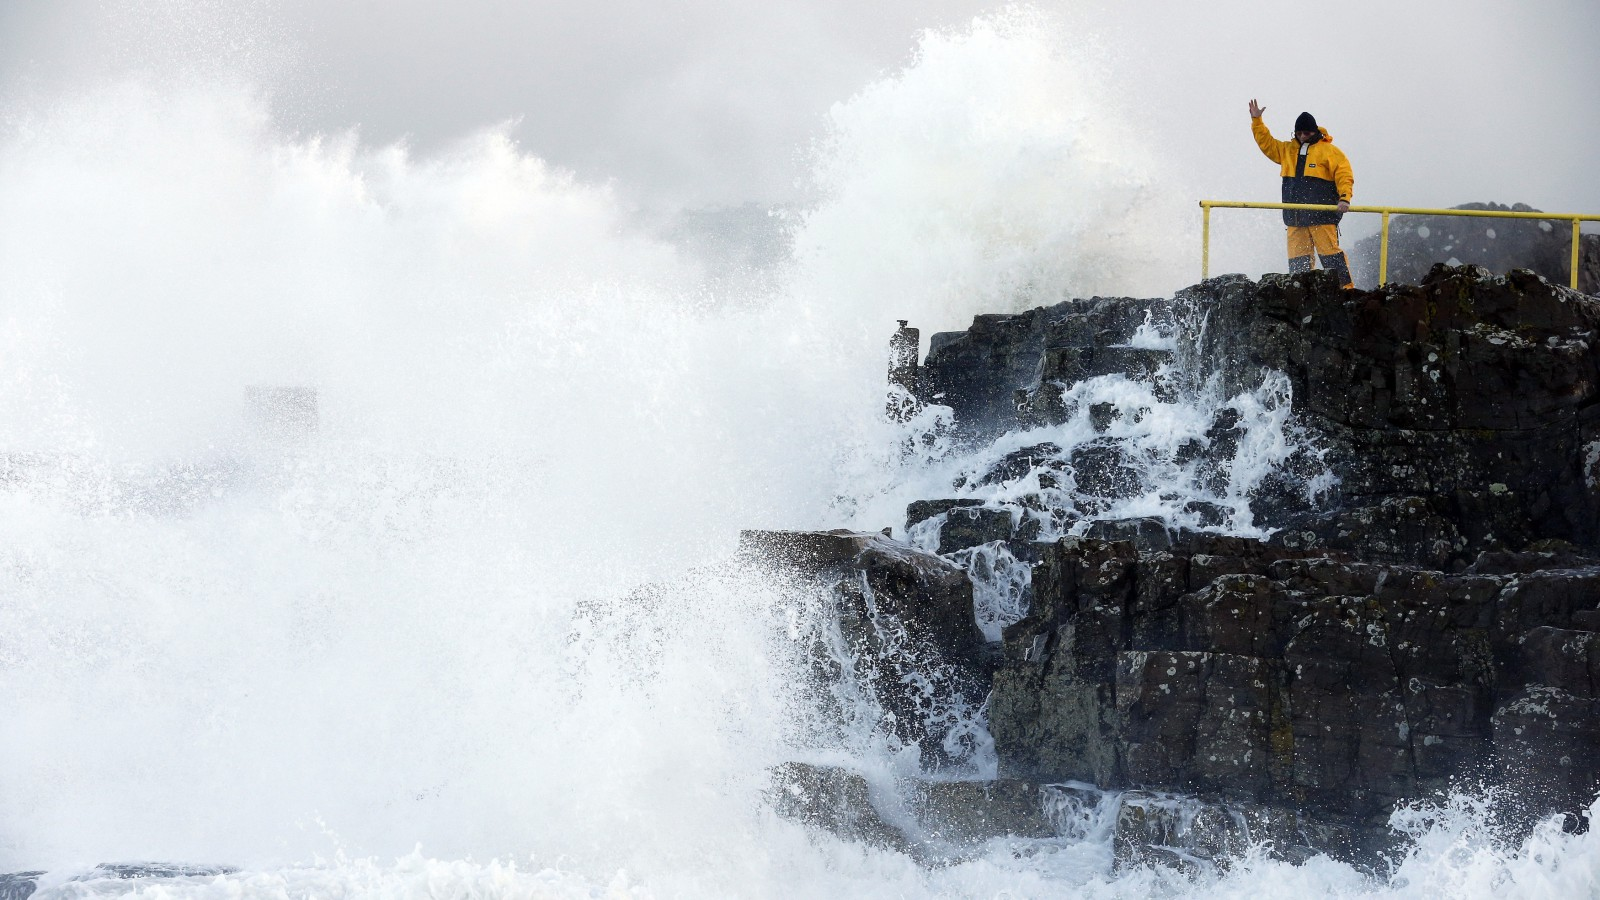 """A man signals as waves crash against the shore at Portstewart in northern Ireland December 10, 2014. Up to 17,000 residents in the west of Scotland were left without power on Wednesday morning as a """"weather bomb"""" of wet and windy conditions battered parts of Britain with gusts expected to reach up to 80 miles per hour (130 km/h). REUTERS/Cathal McNaughton (NORTHERN IRELAND - Tags: ENVIRONMENT) - RTR4HH4G"""